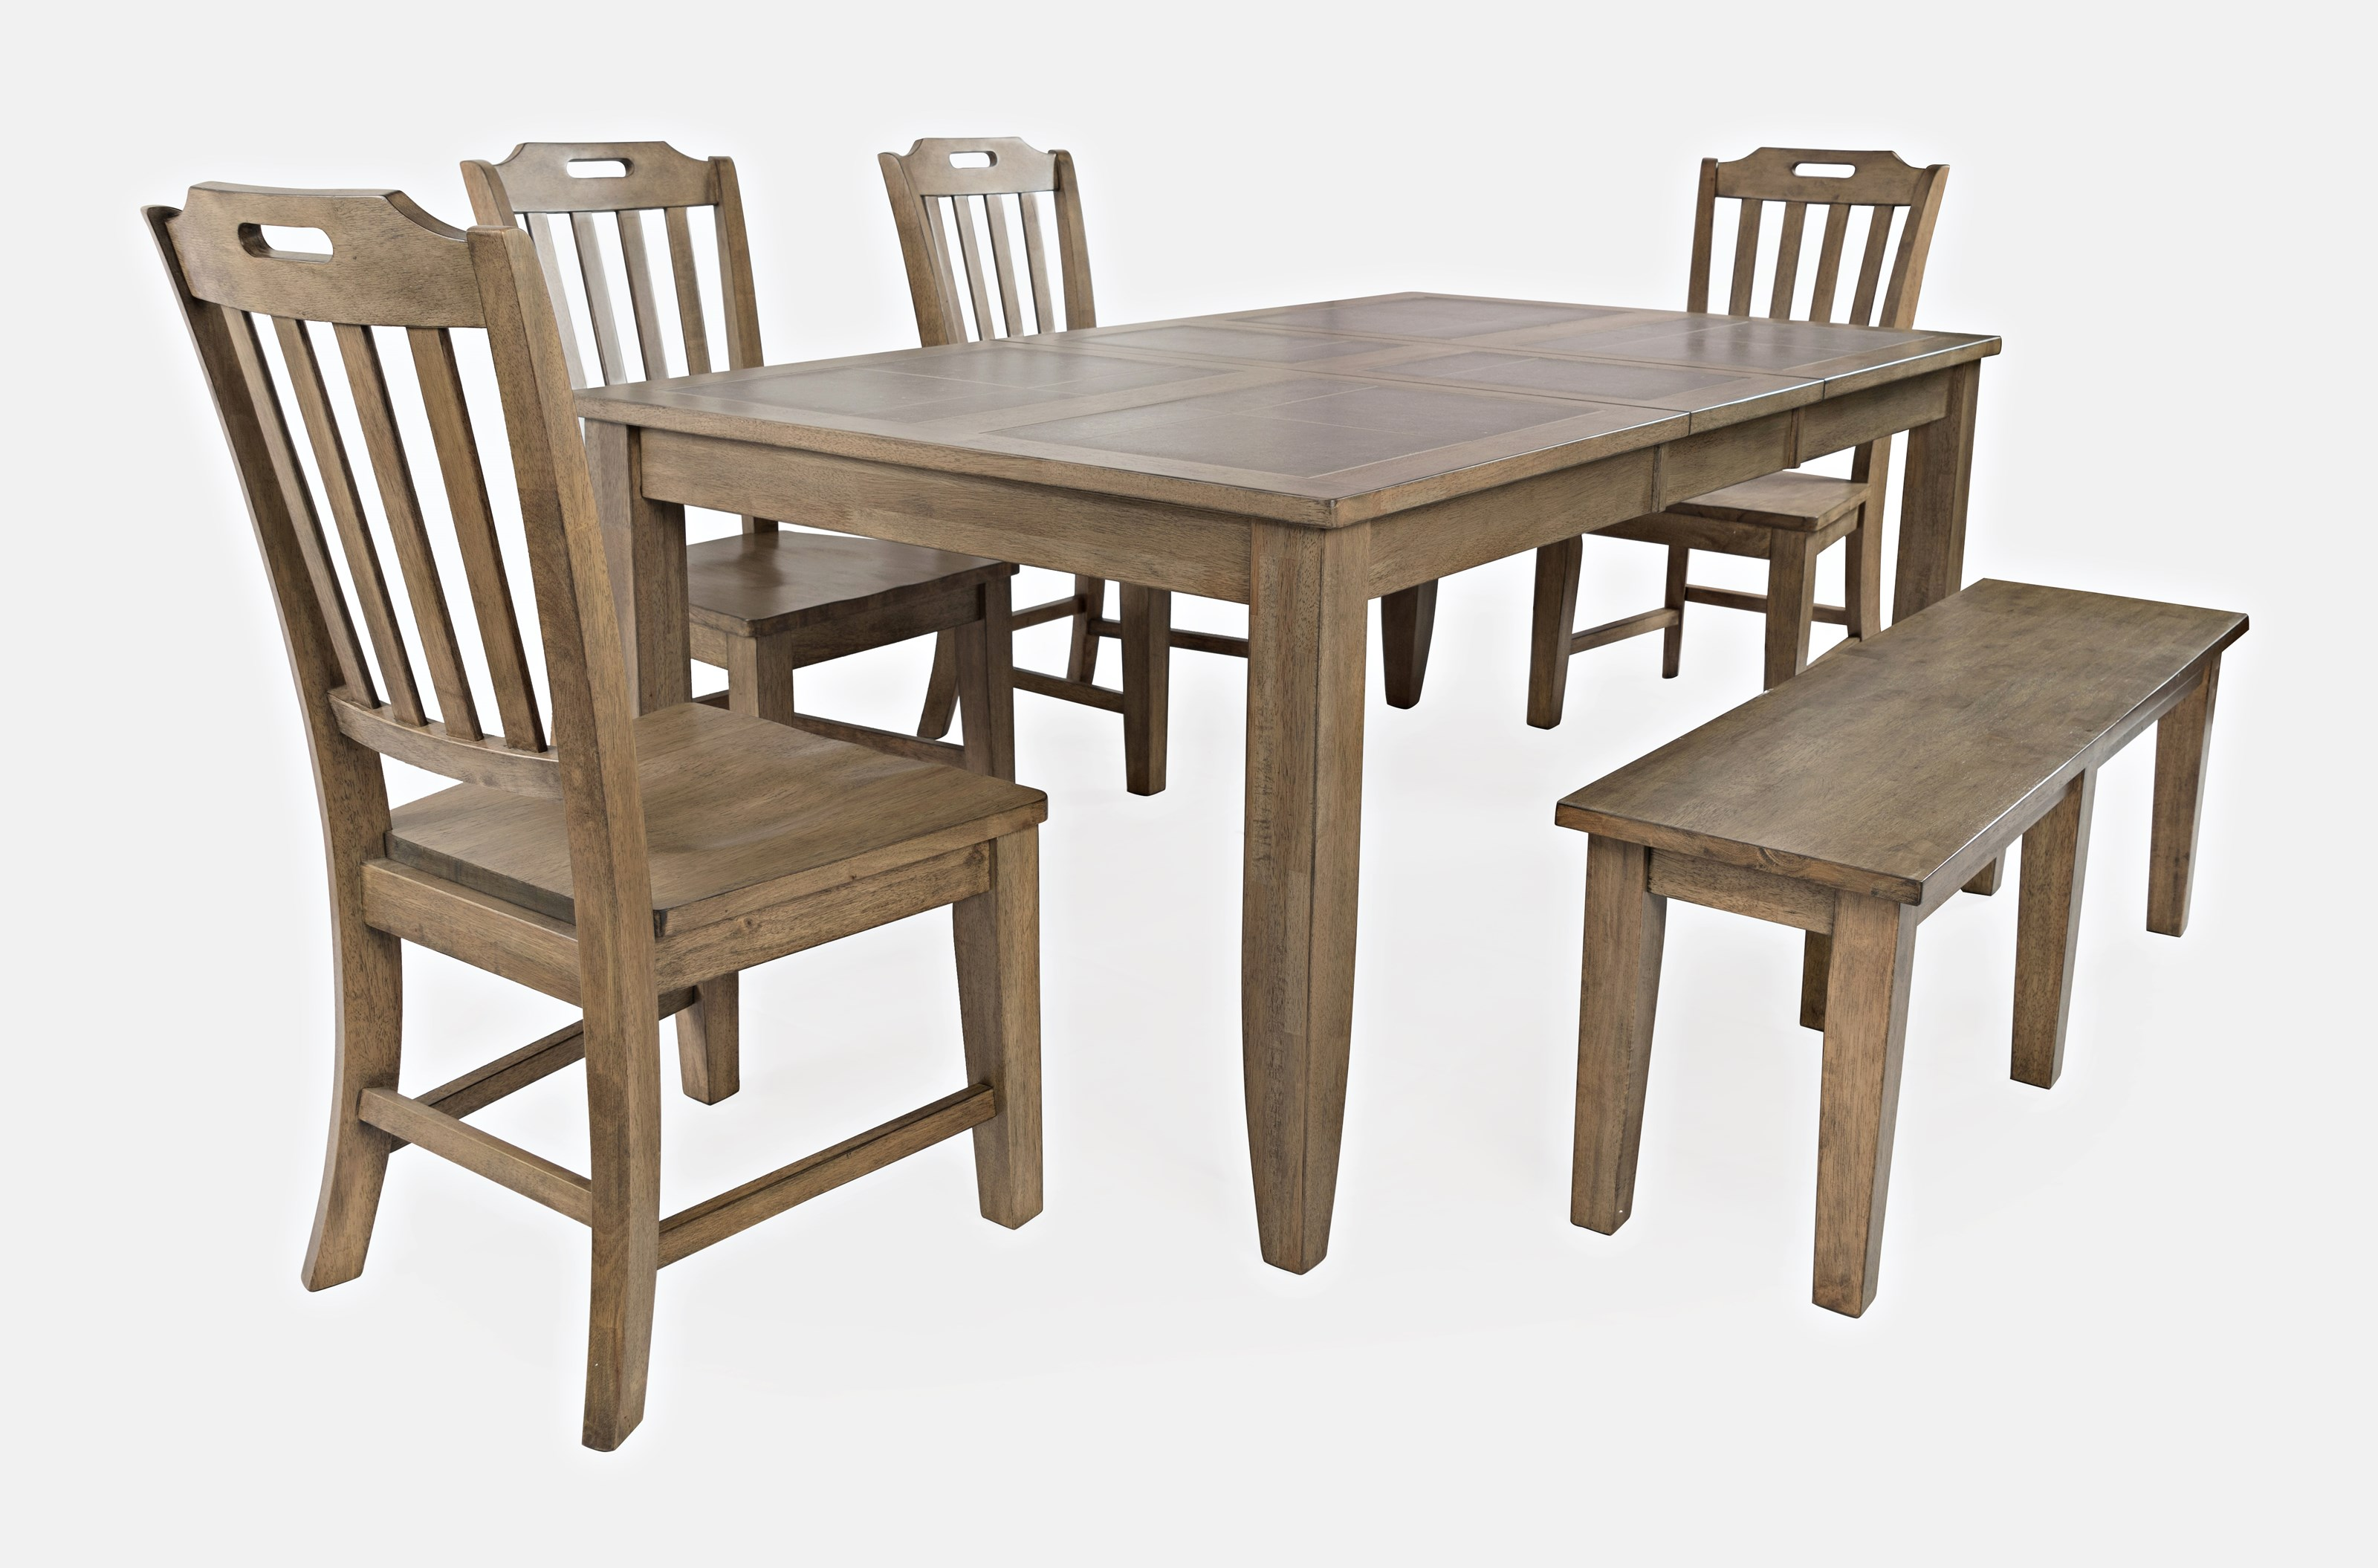 Prescott Park 6-Piece Dining Table and Chair Set by Jofran at Jofran